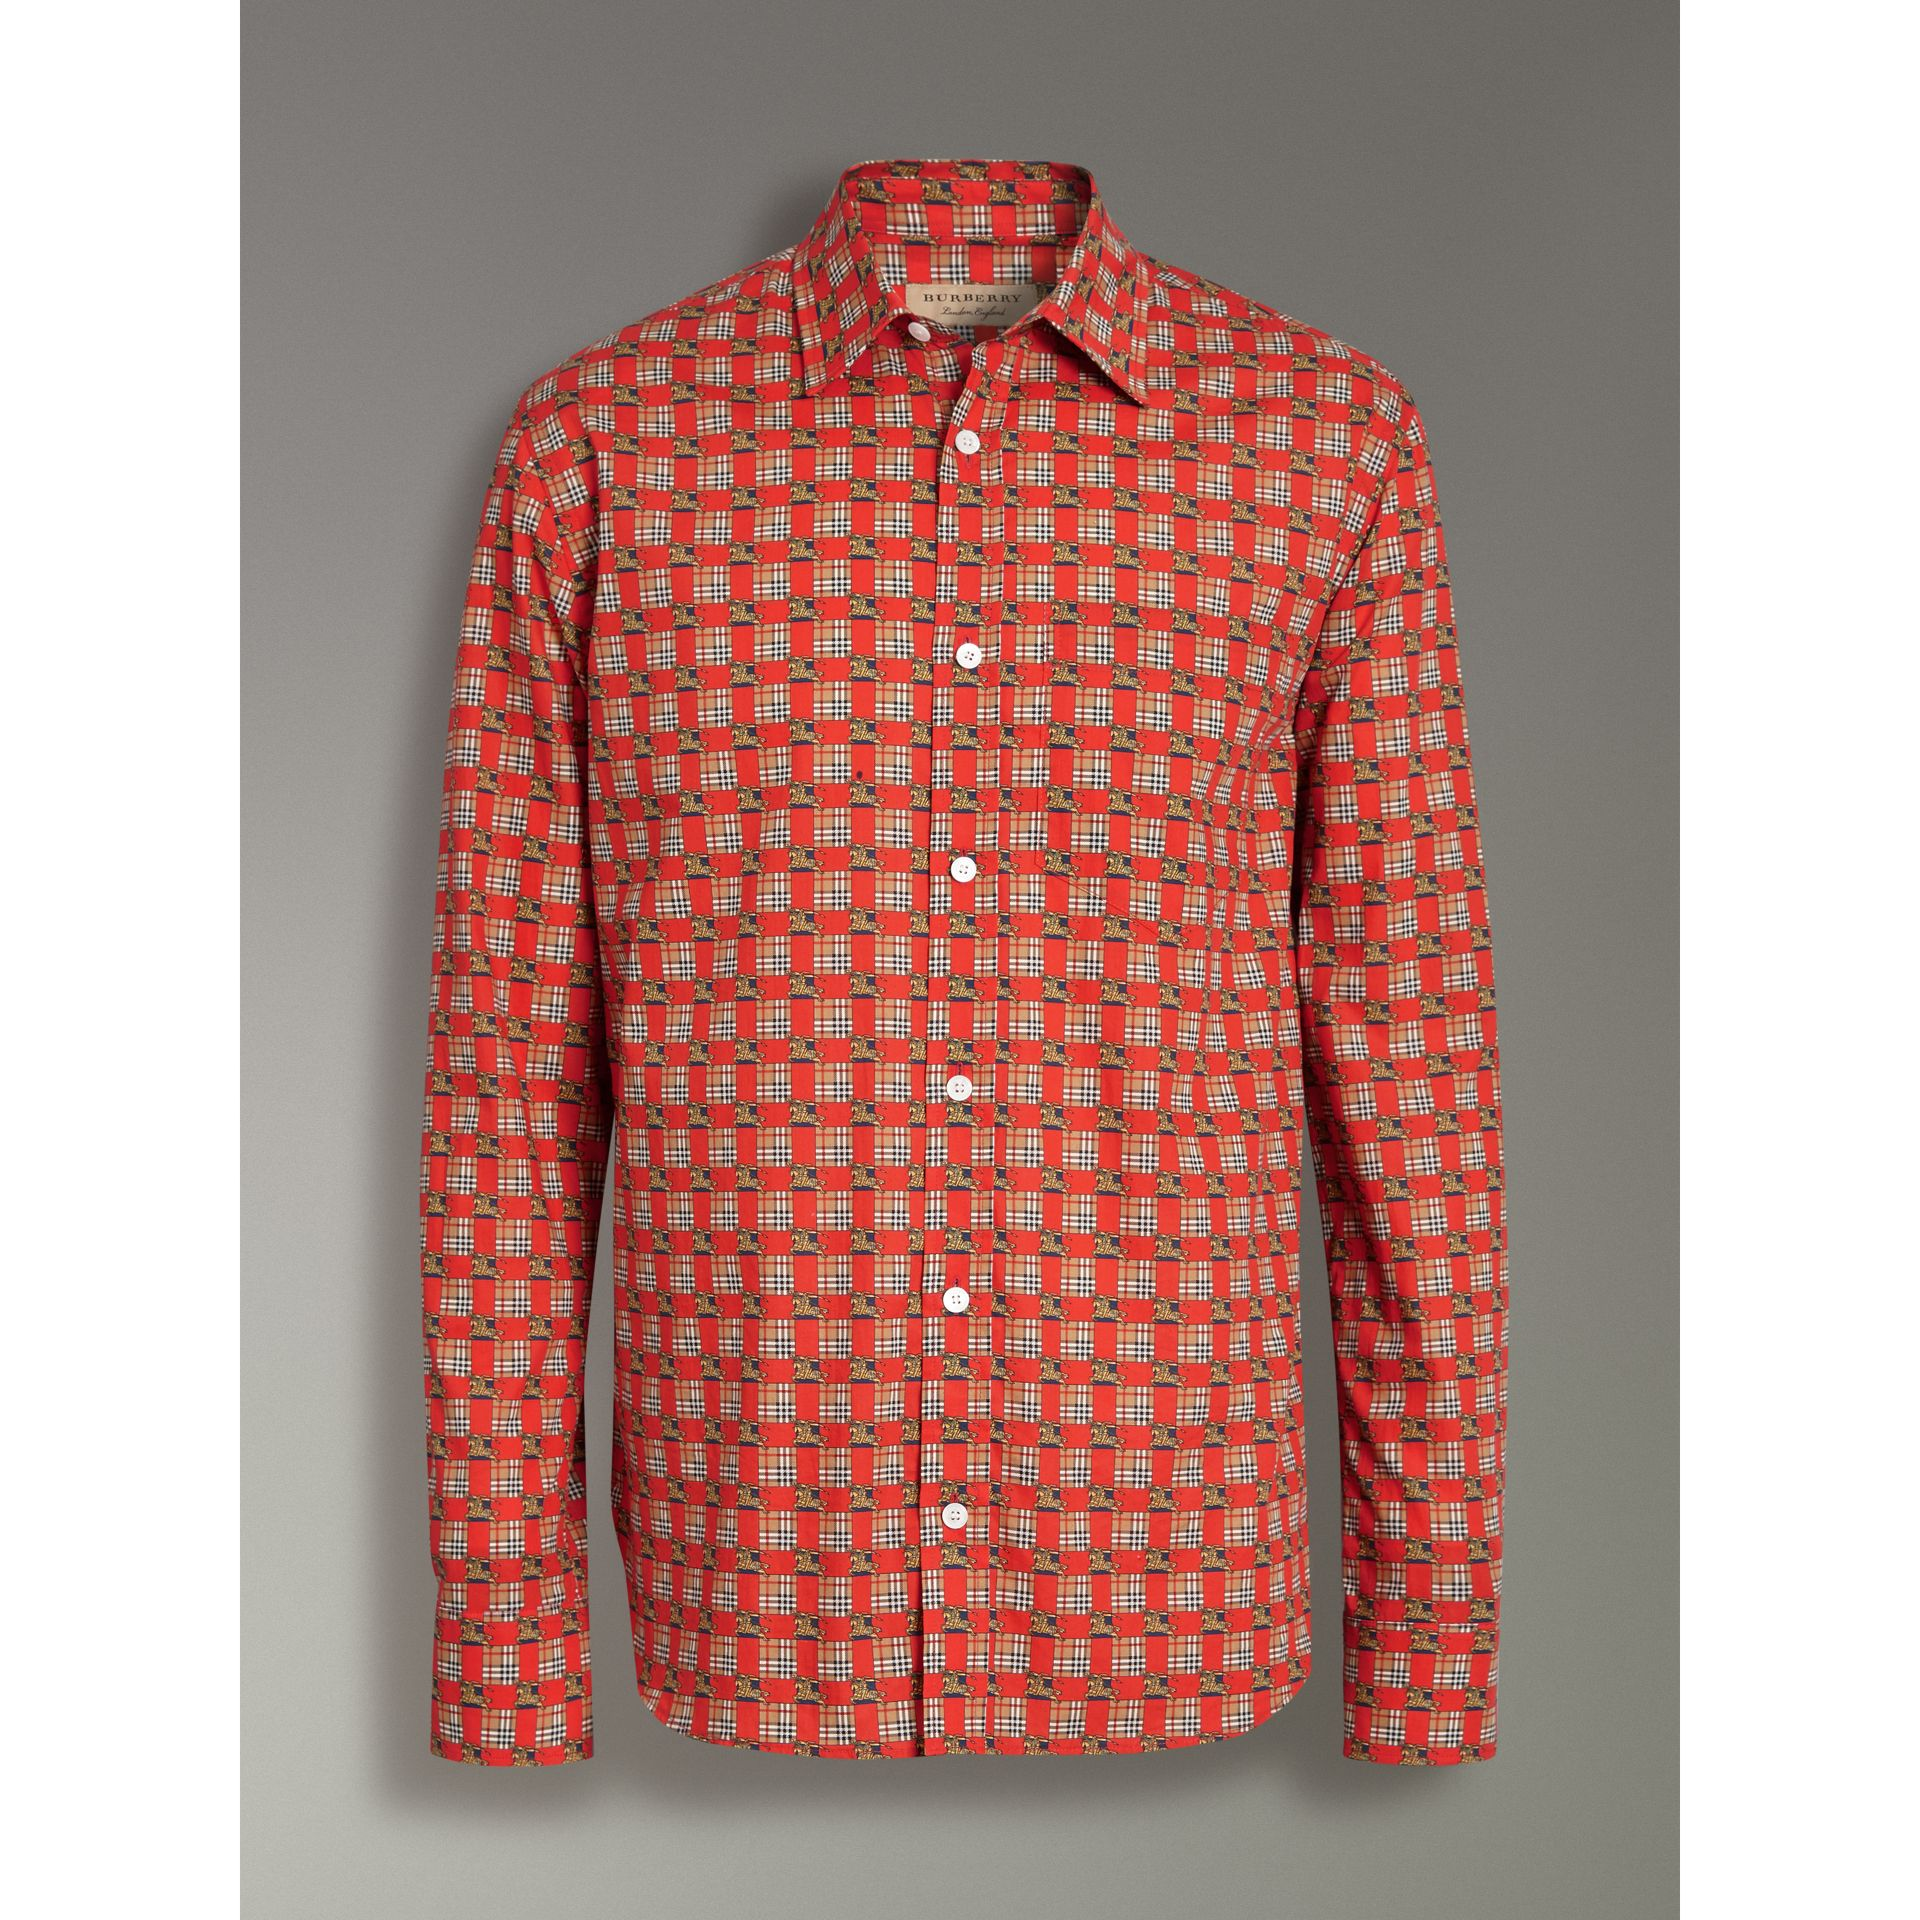 Tiled Archive Print Cotton Shirt in Bright Red - Men | Burberry Canada - gallery image 3